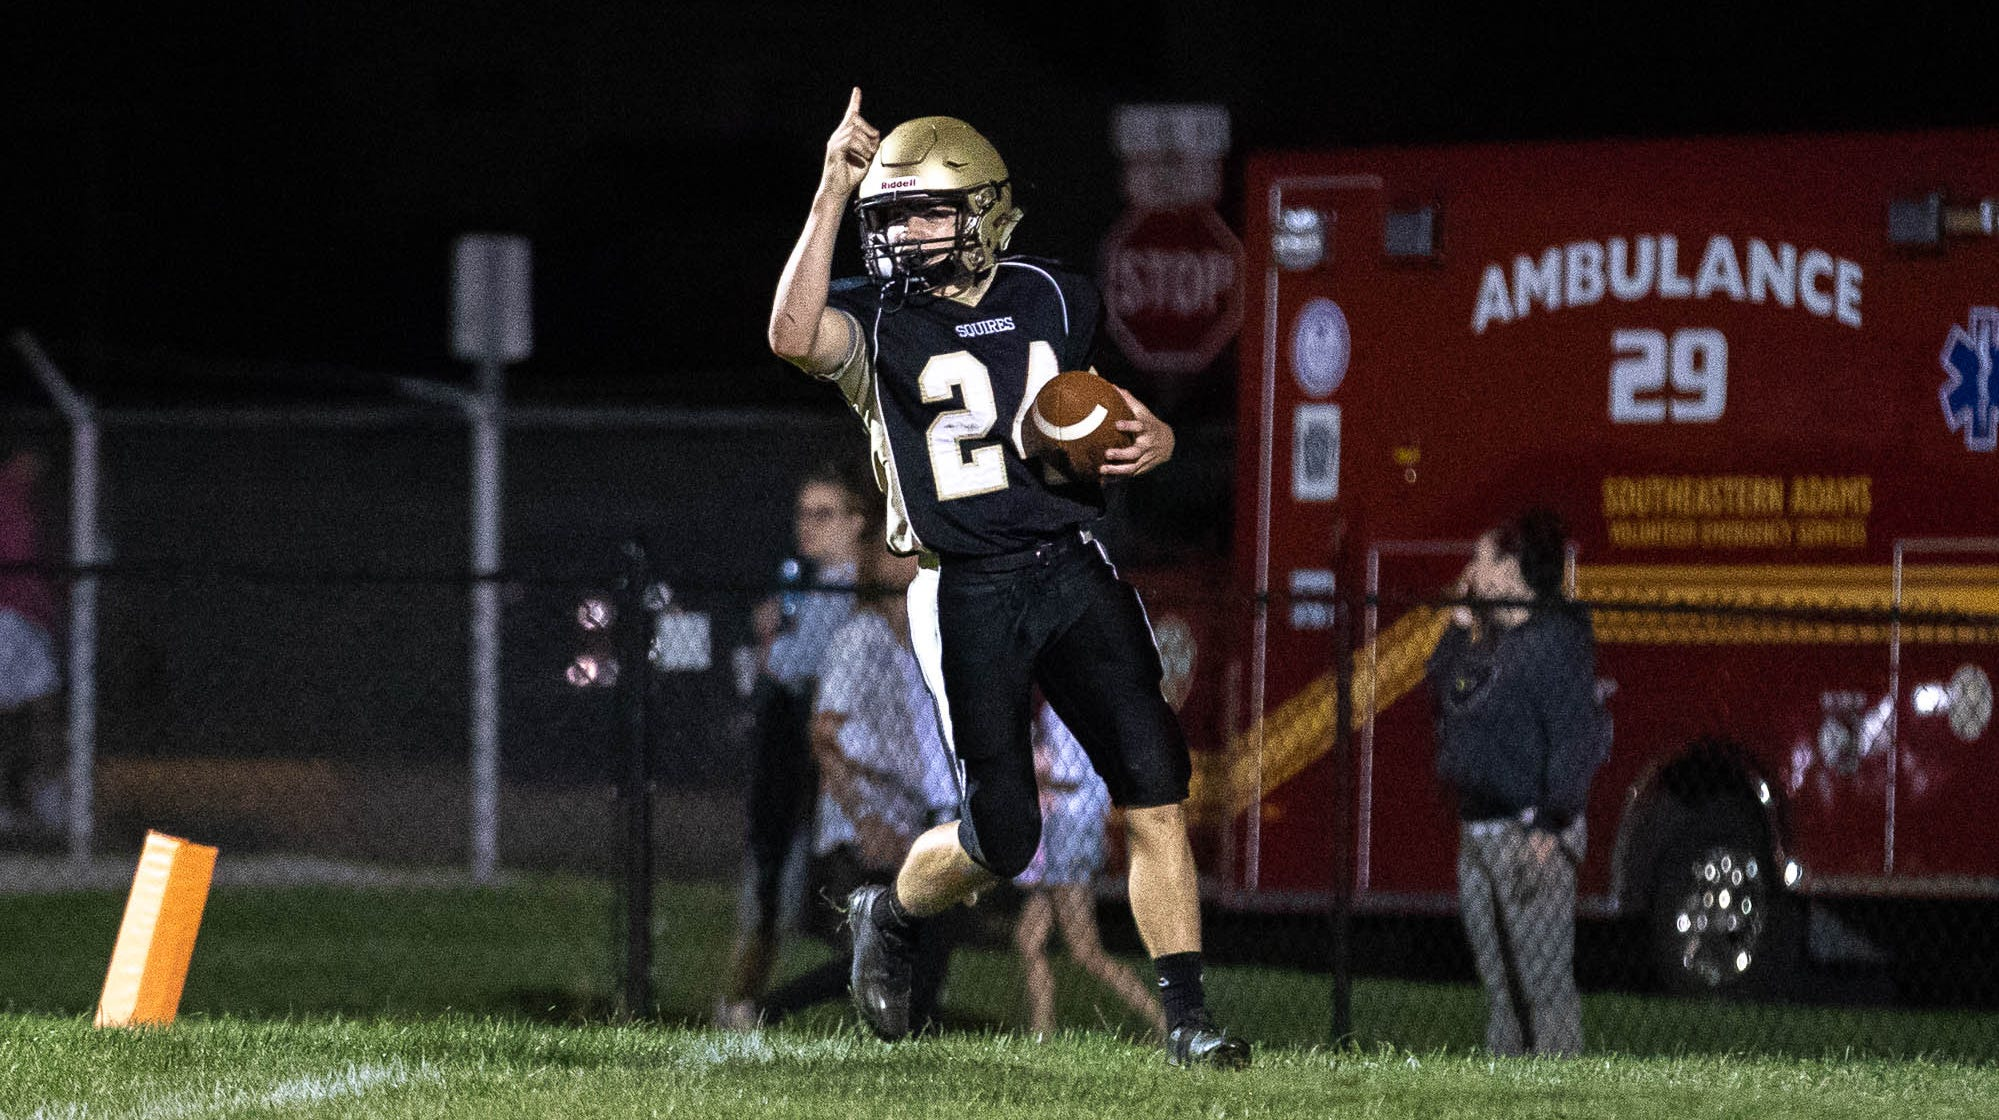 YAIAA football power rankings: Where are the small schools after Week 4?